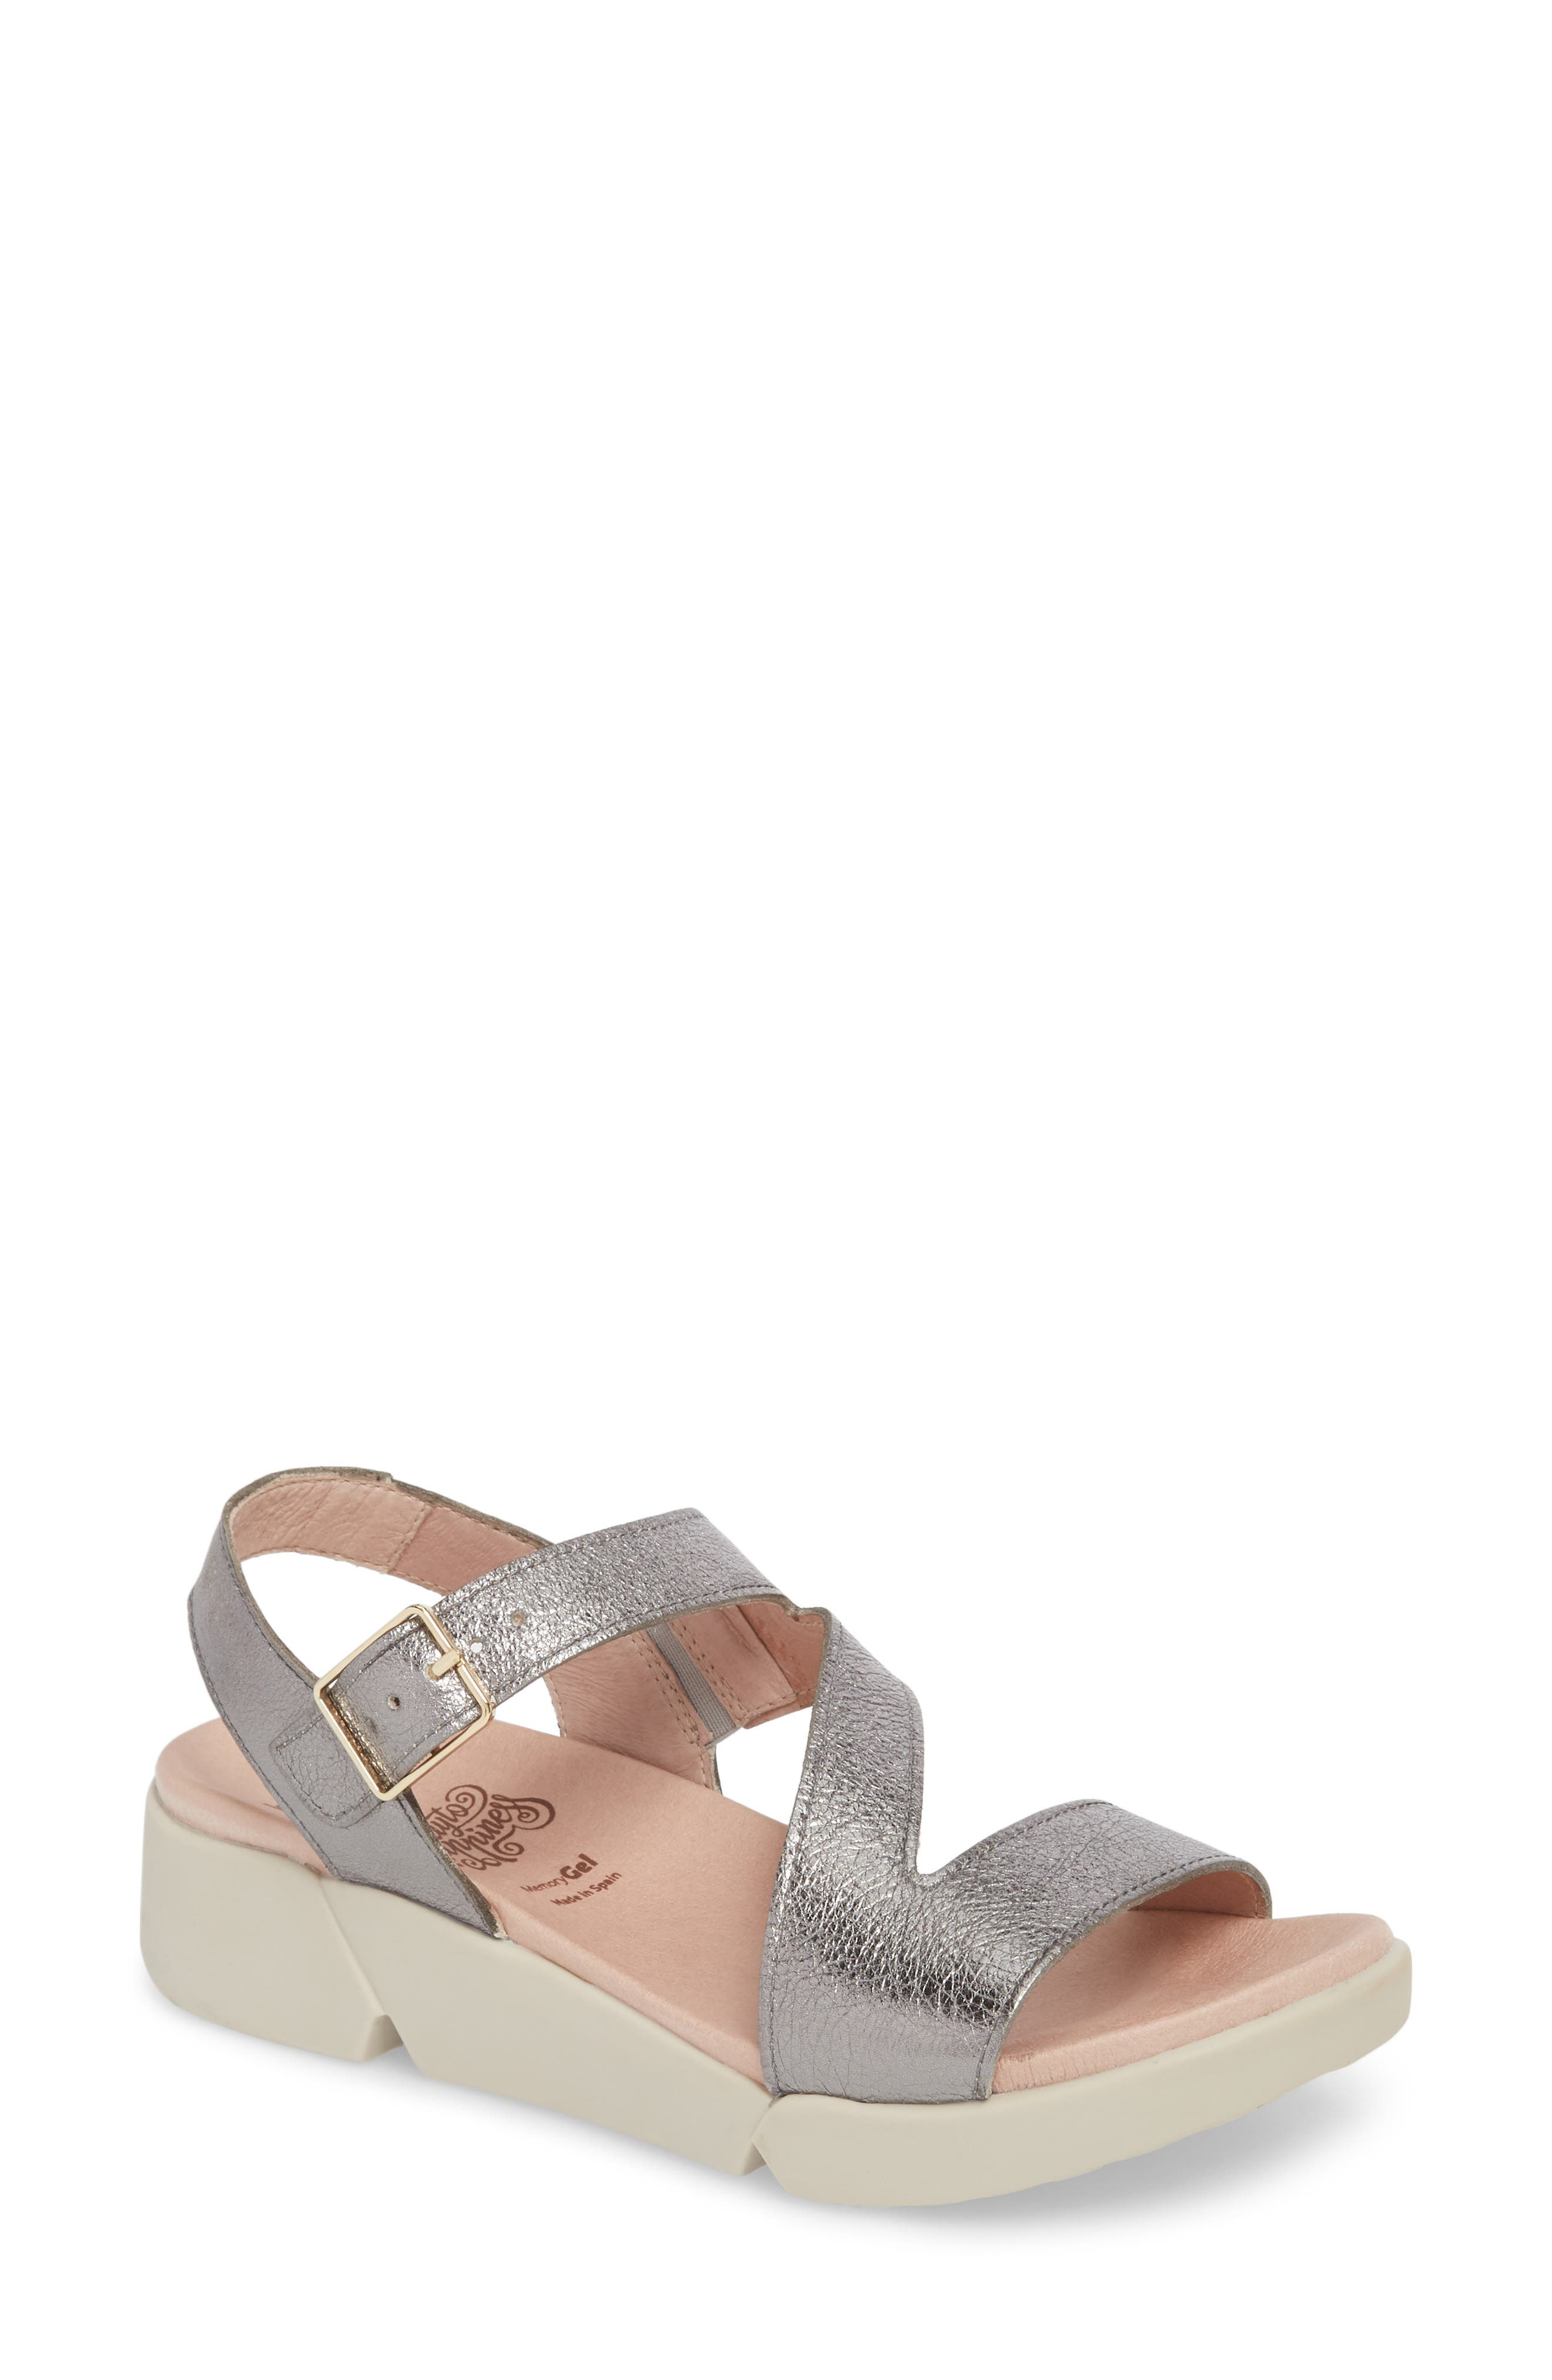 Wonders Platform Wedge Sandal, Grey